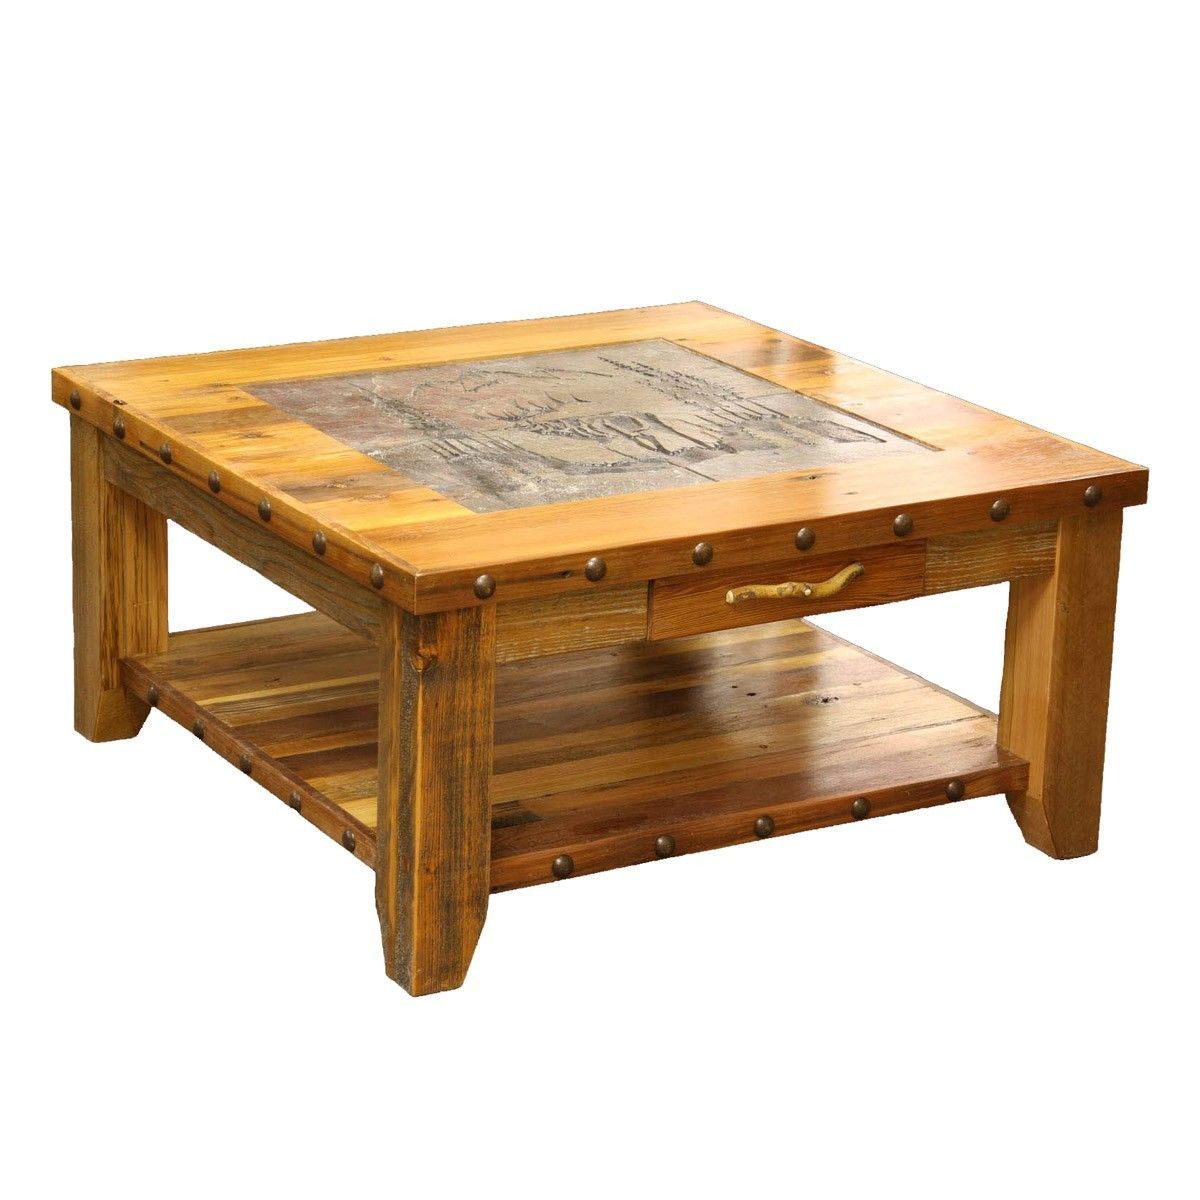 Western Coffee Table Country Rustic Wood Living Room Furniture